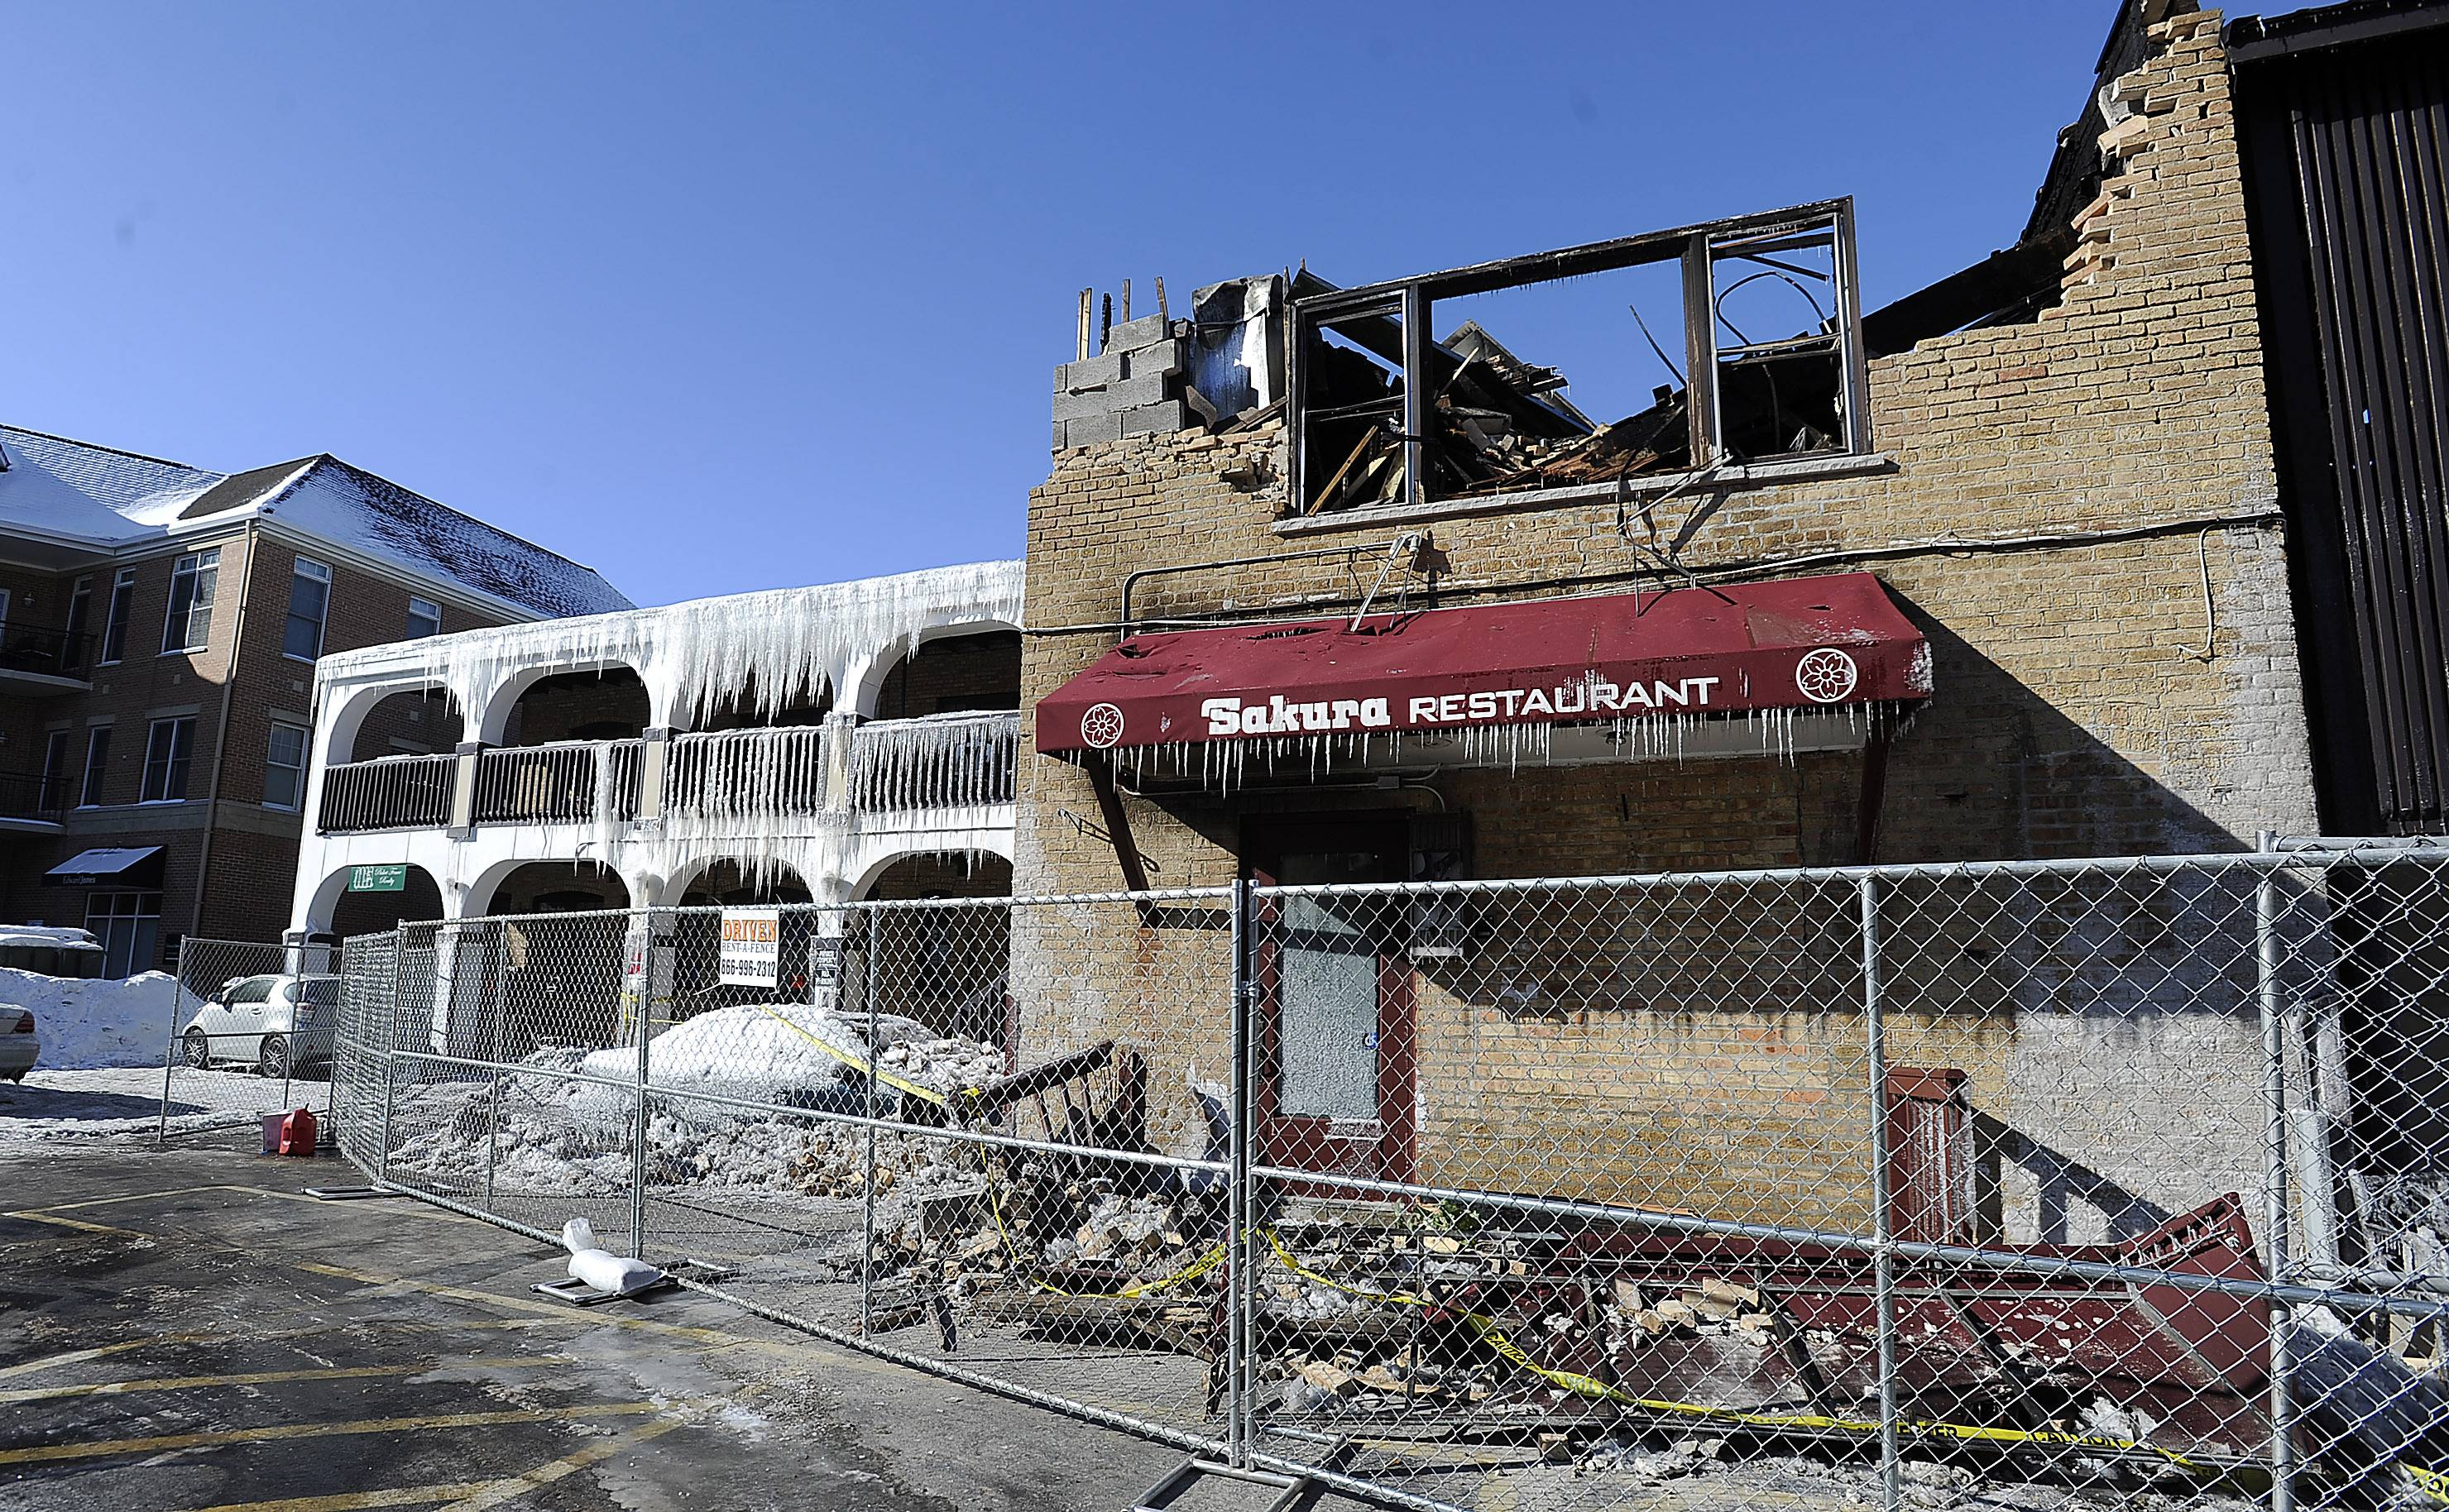 Sakura Japanese Restaurant in Mount Prospect was deemed by authorities to be a total loss after a fire there early Sunday morning.